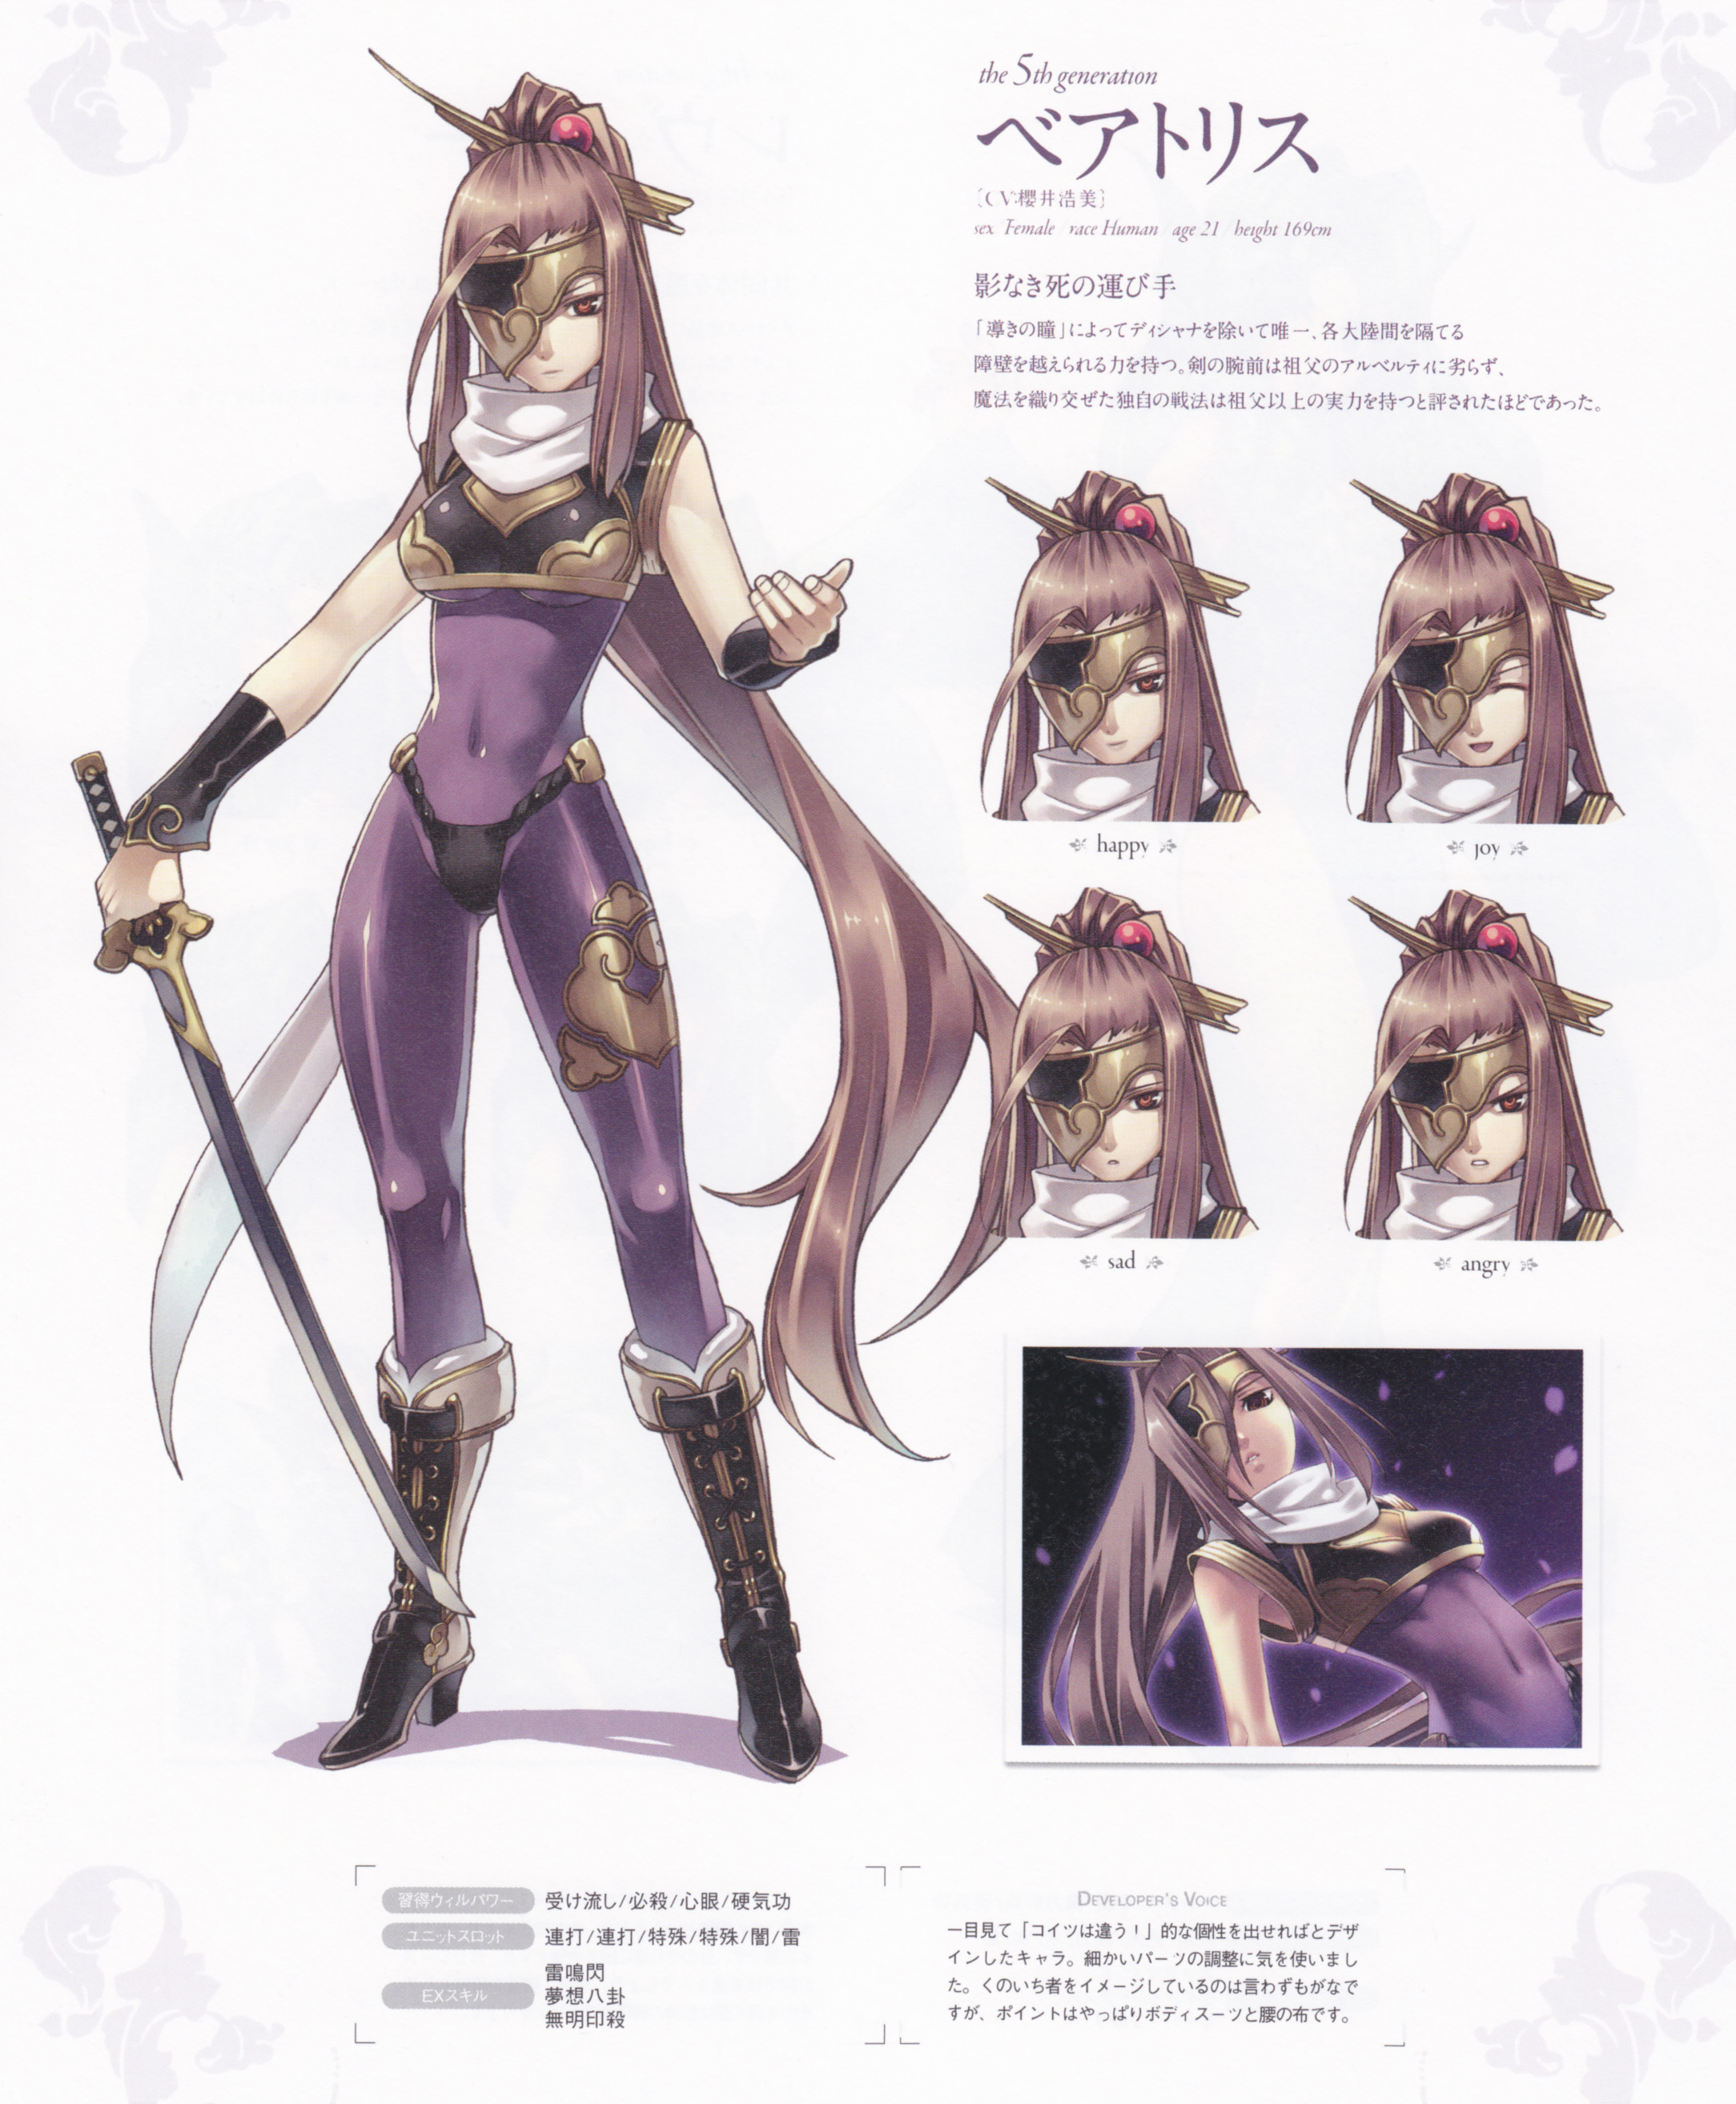 ... download Record Of Agarest War - Heroines Visual Book image